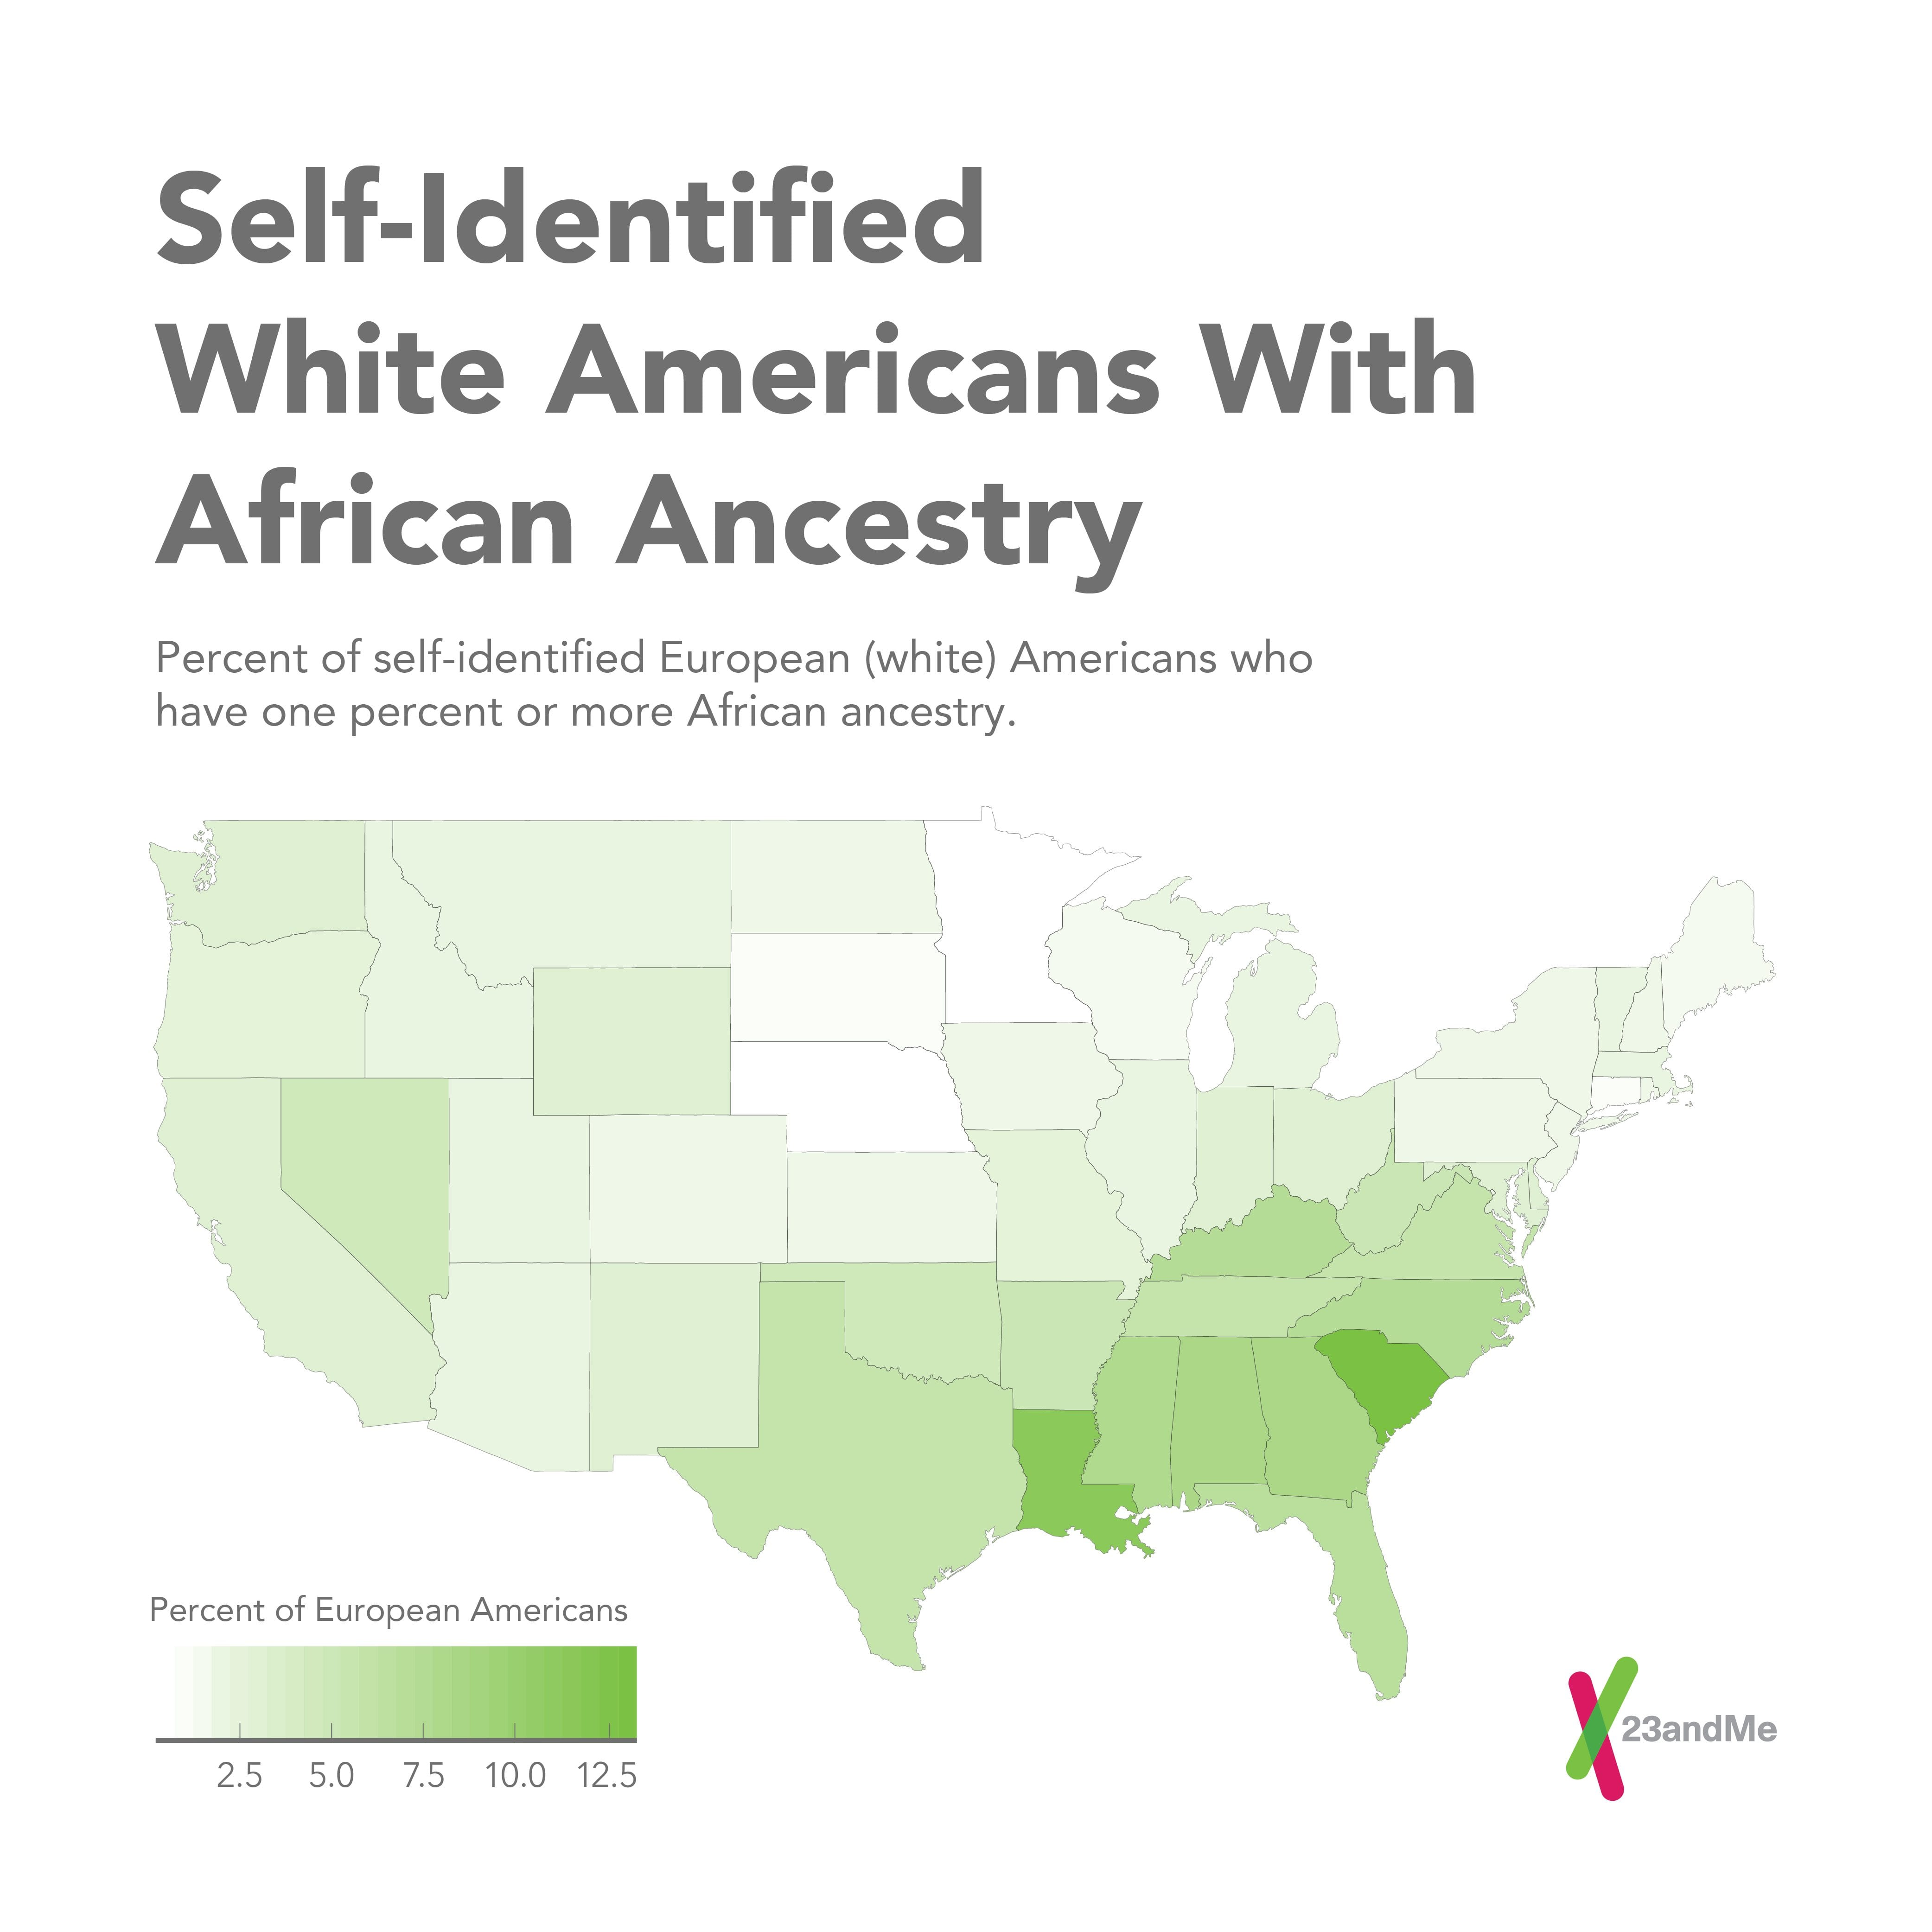 genetic testing of african americans essay Genetic testing is not only  that african americans do not live as long as  efforts to enact protections against genetic discrimination in the areas.